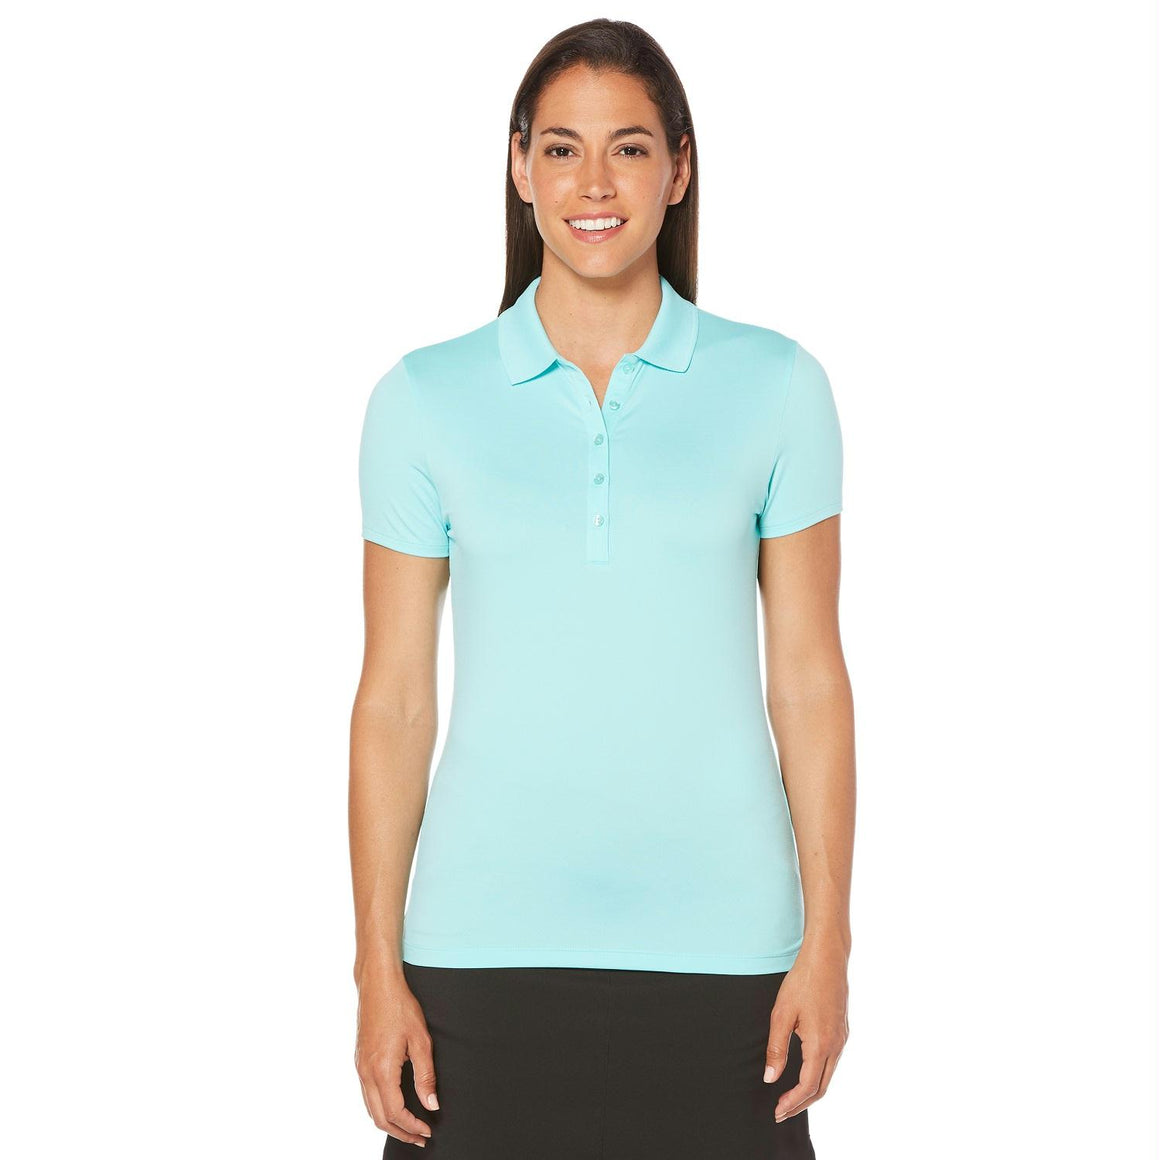 Callaway Opti-Dri Micro-Hex Short Sleeve Polo Blue XS